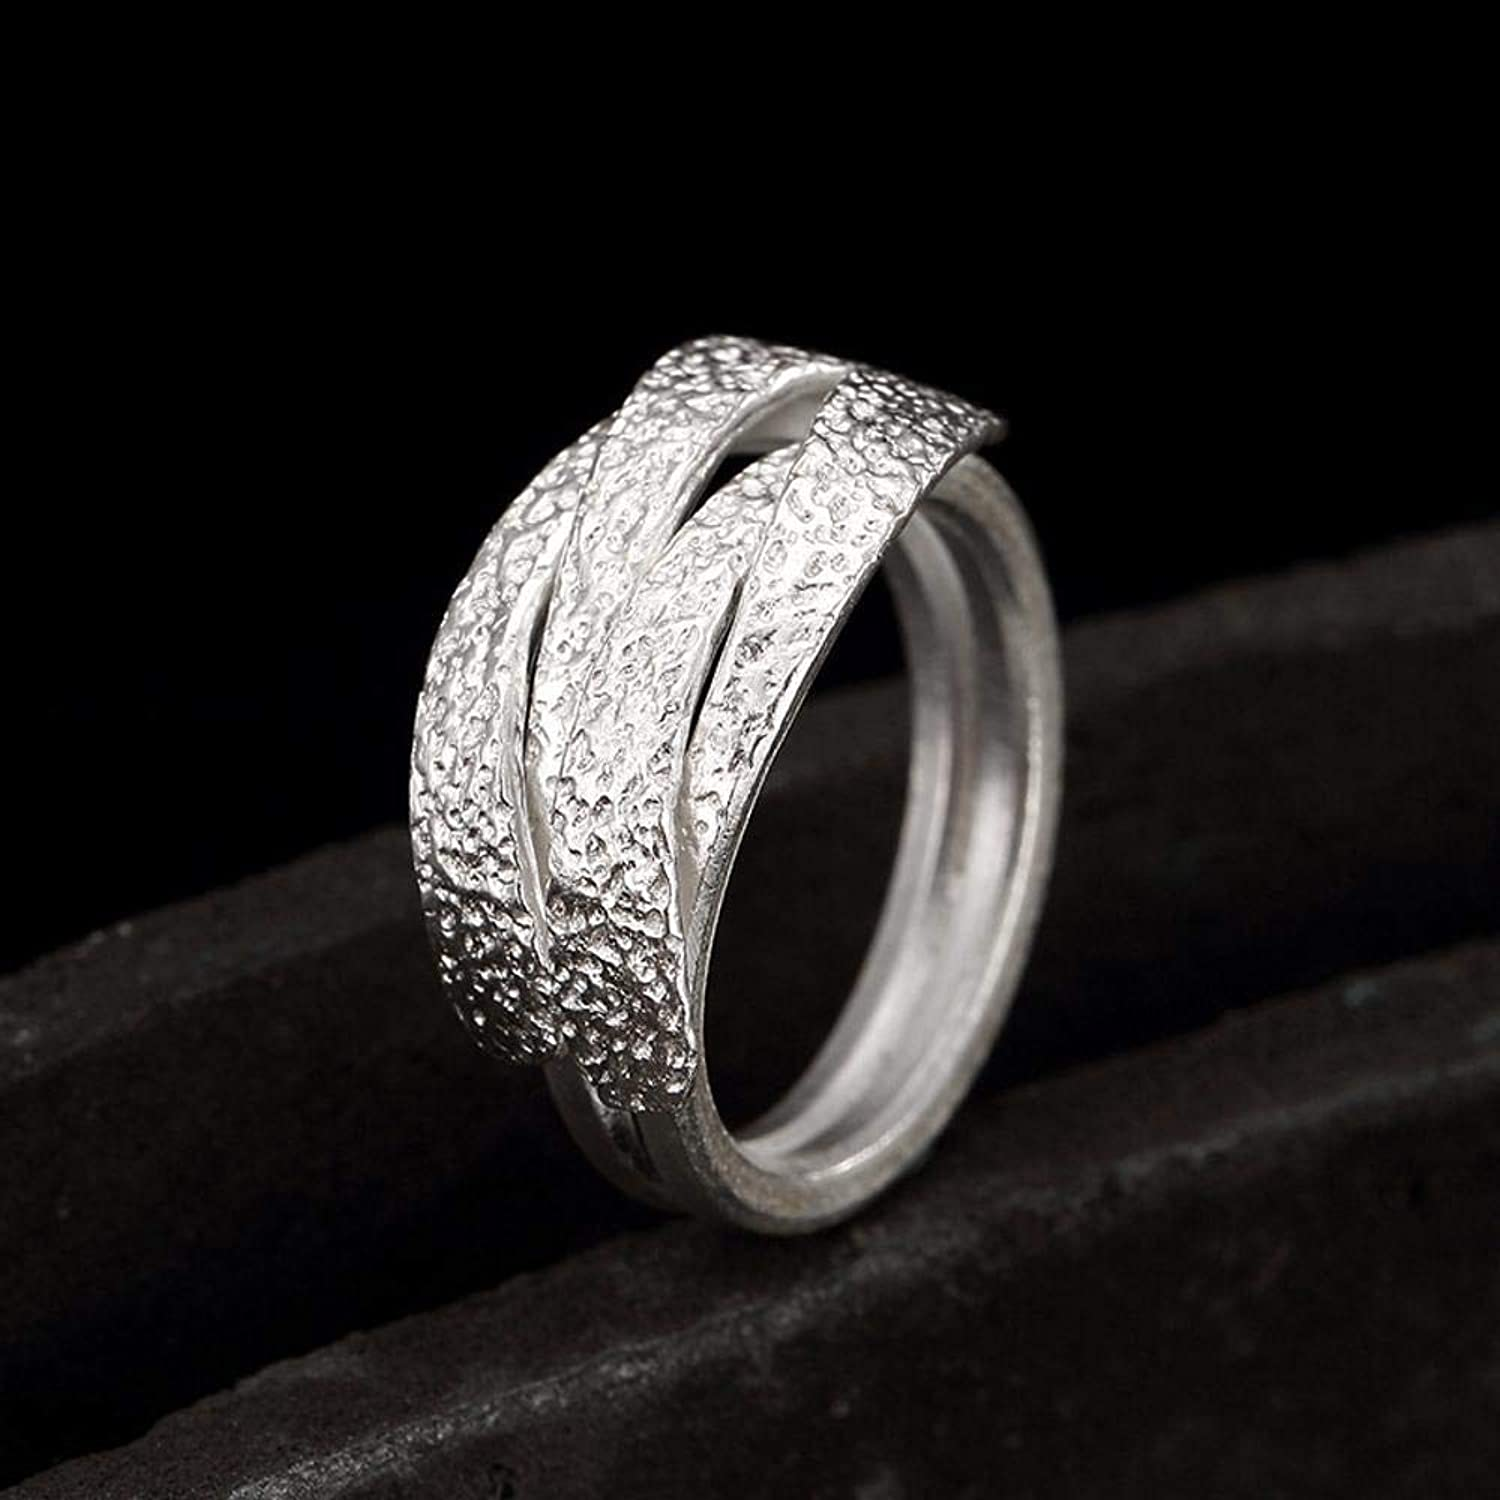 DTZH Rings Jewellery Ring S925 Pure Silver Female Simple Personality Hand Woven Winding Ring Gift to Dear People